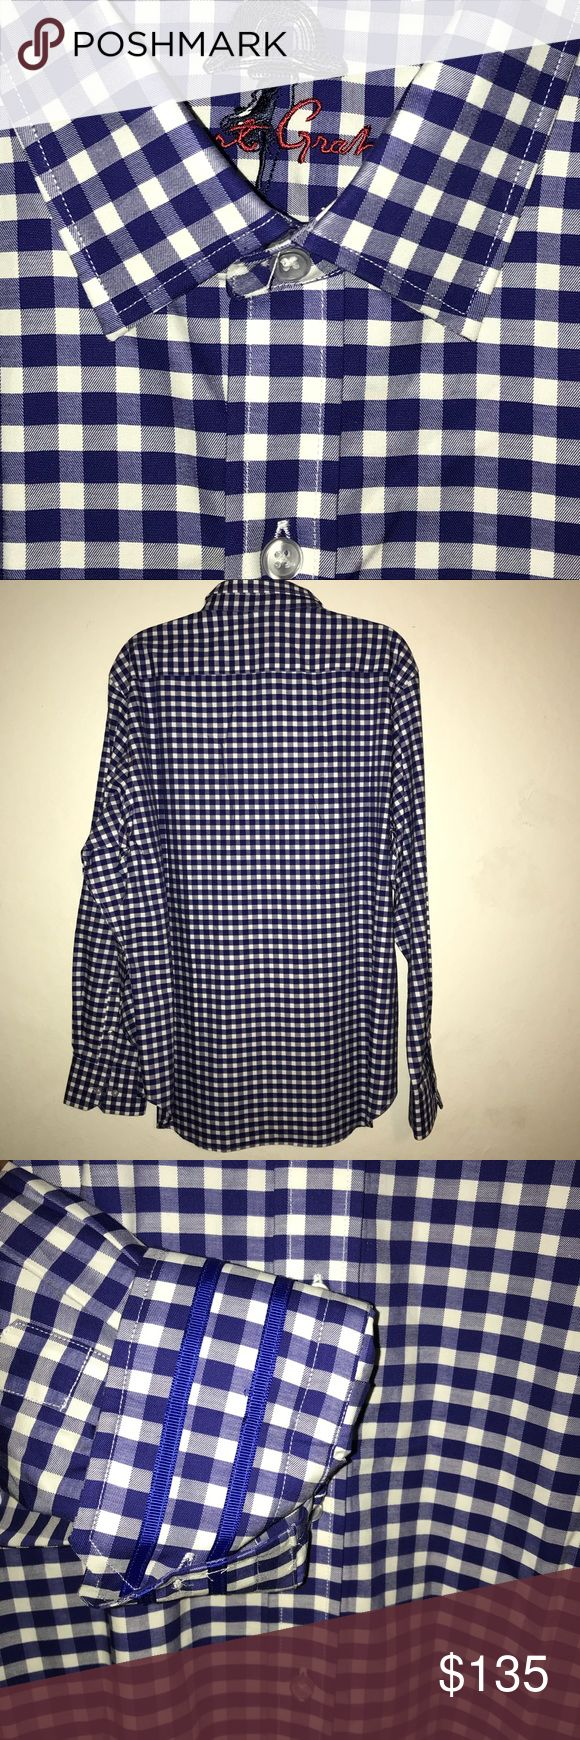 """ROBERT GRAHAM Plaid Check Button Front SHIRT For sale:ROBERT GRAHAM MSRP $198 Blue & White Plaid Check Button Front SHIRT. Size Medium. The color of the shirt is purplish blue. 100% cotton. Dimensions: Pit to Pit: approximately 22"""" Length: approximately 29"""" Sleeve: approximately 35"""" Interested? Robert Graham Shirts Casual Button Down Shirts"""